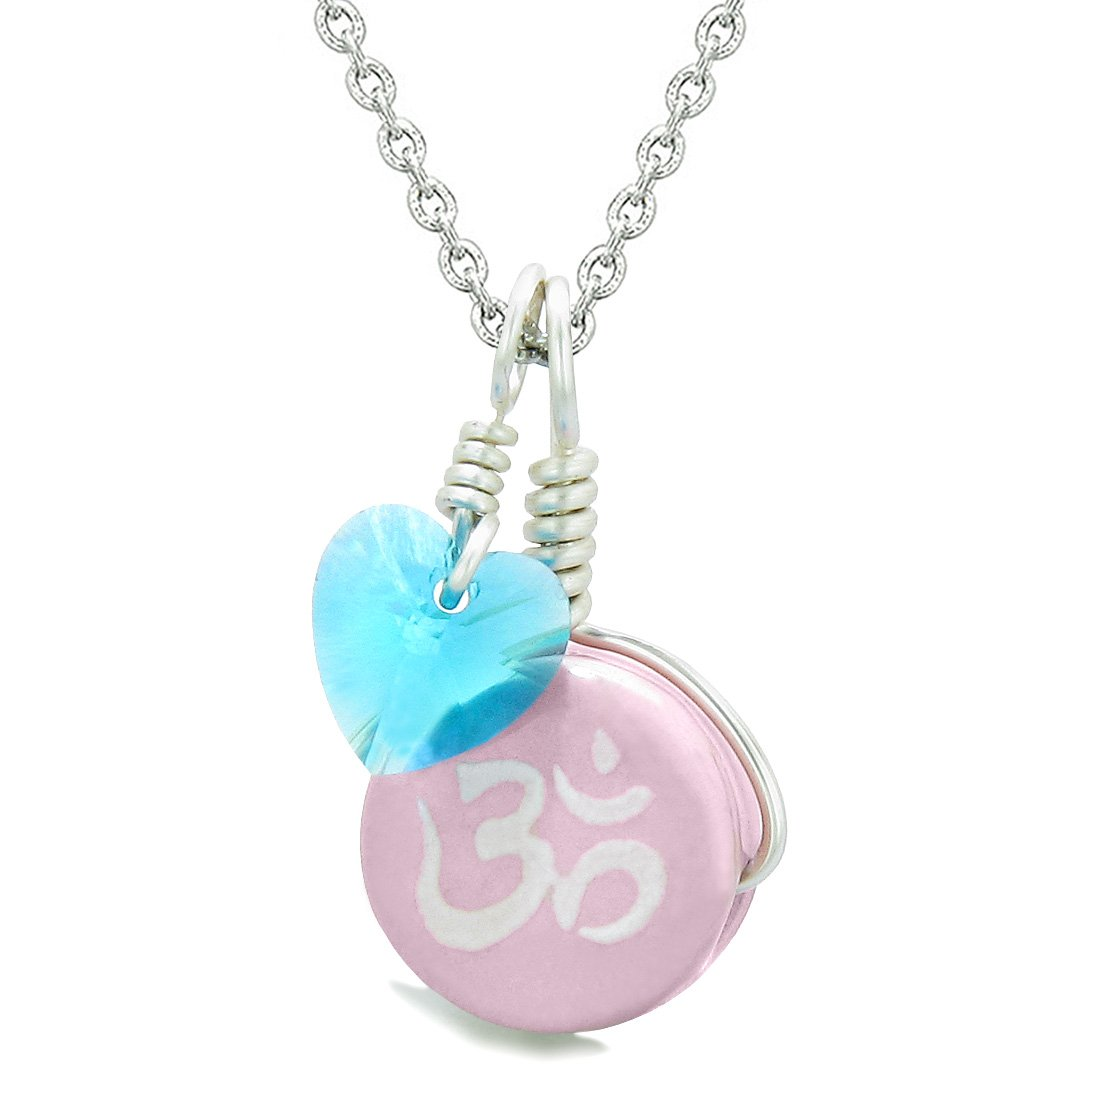 Handcrafted Cute Ceramic Lucky Charm Pink OM Ohm Tibetan Blue Heart Amulet Pendant 22 Inch Necklace